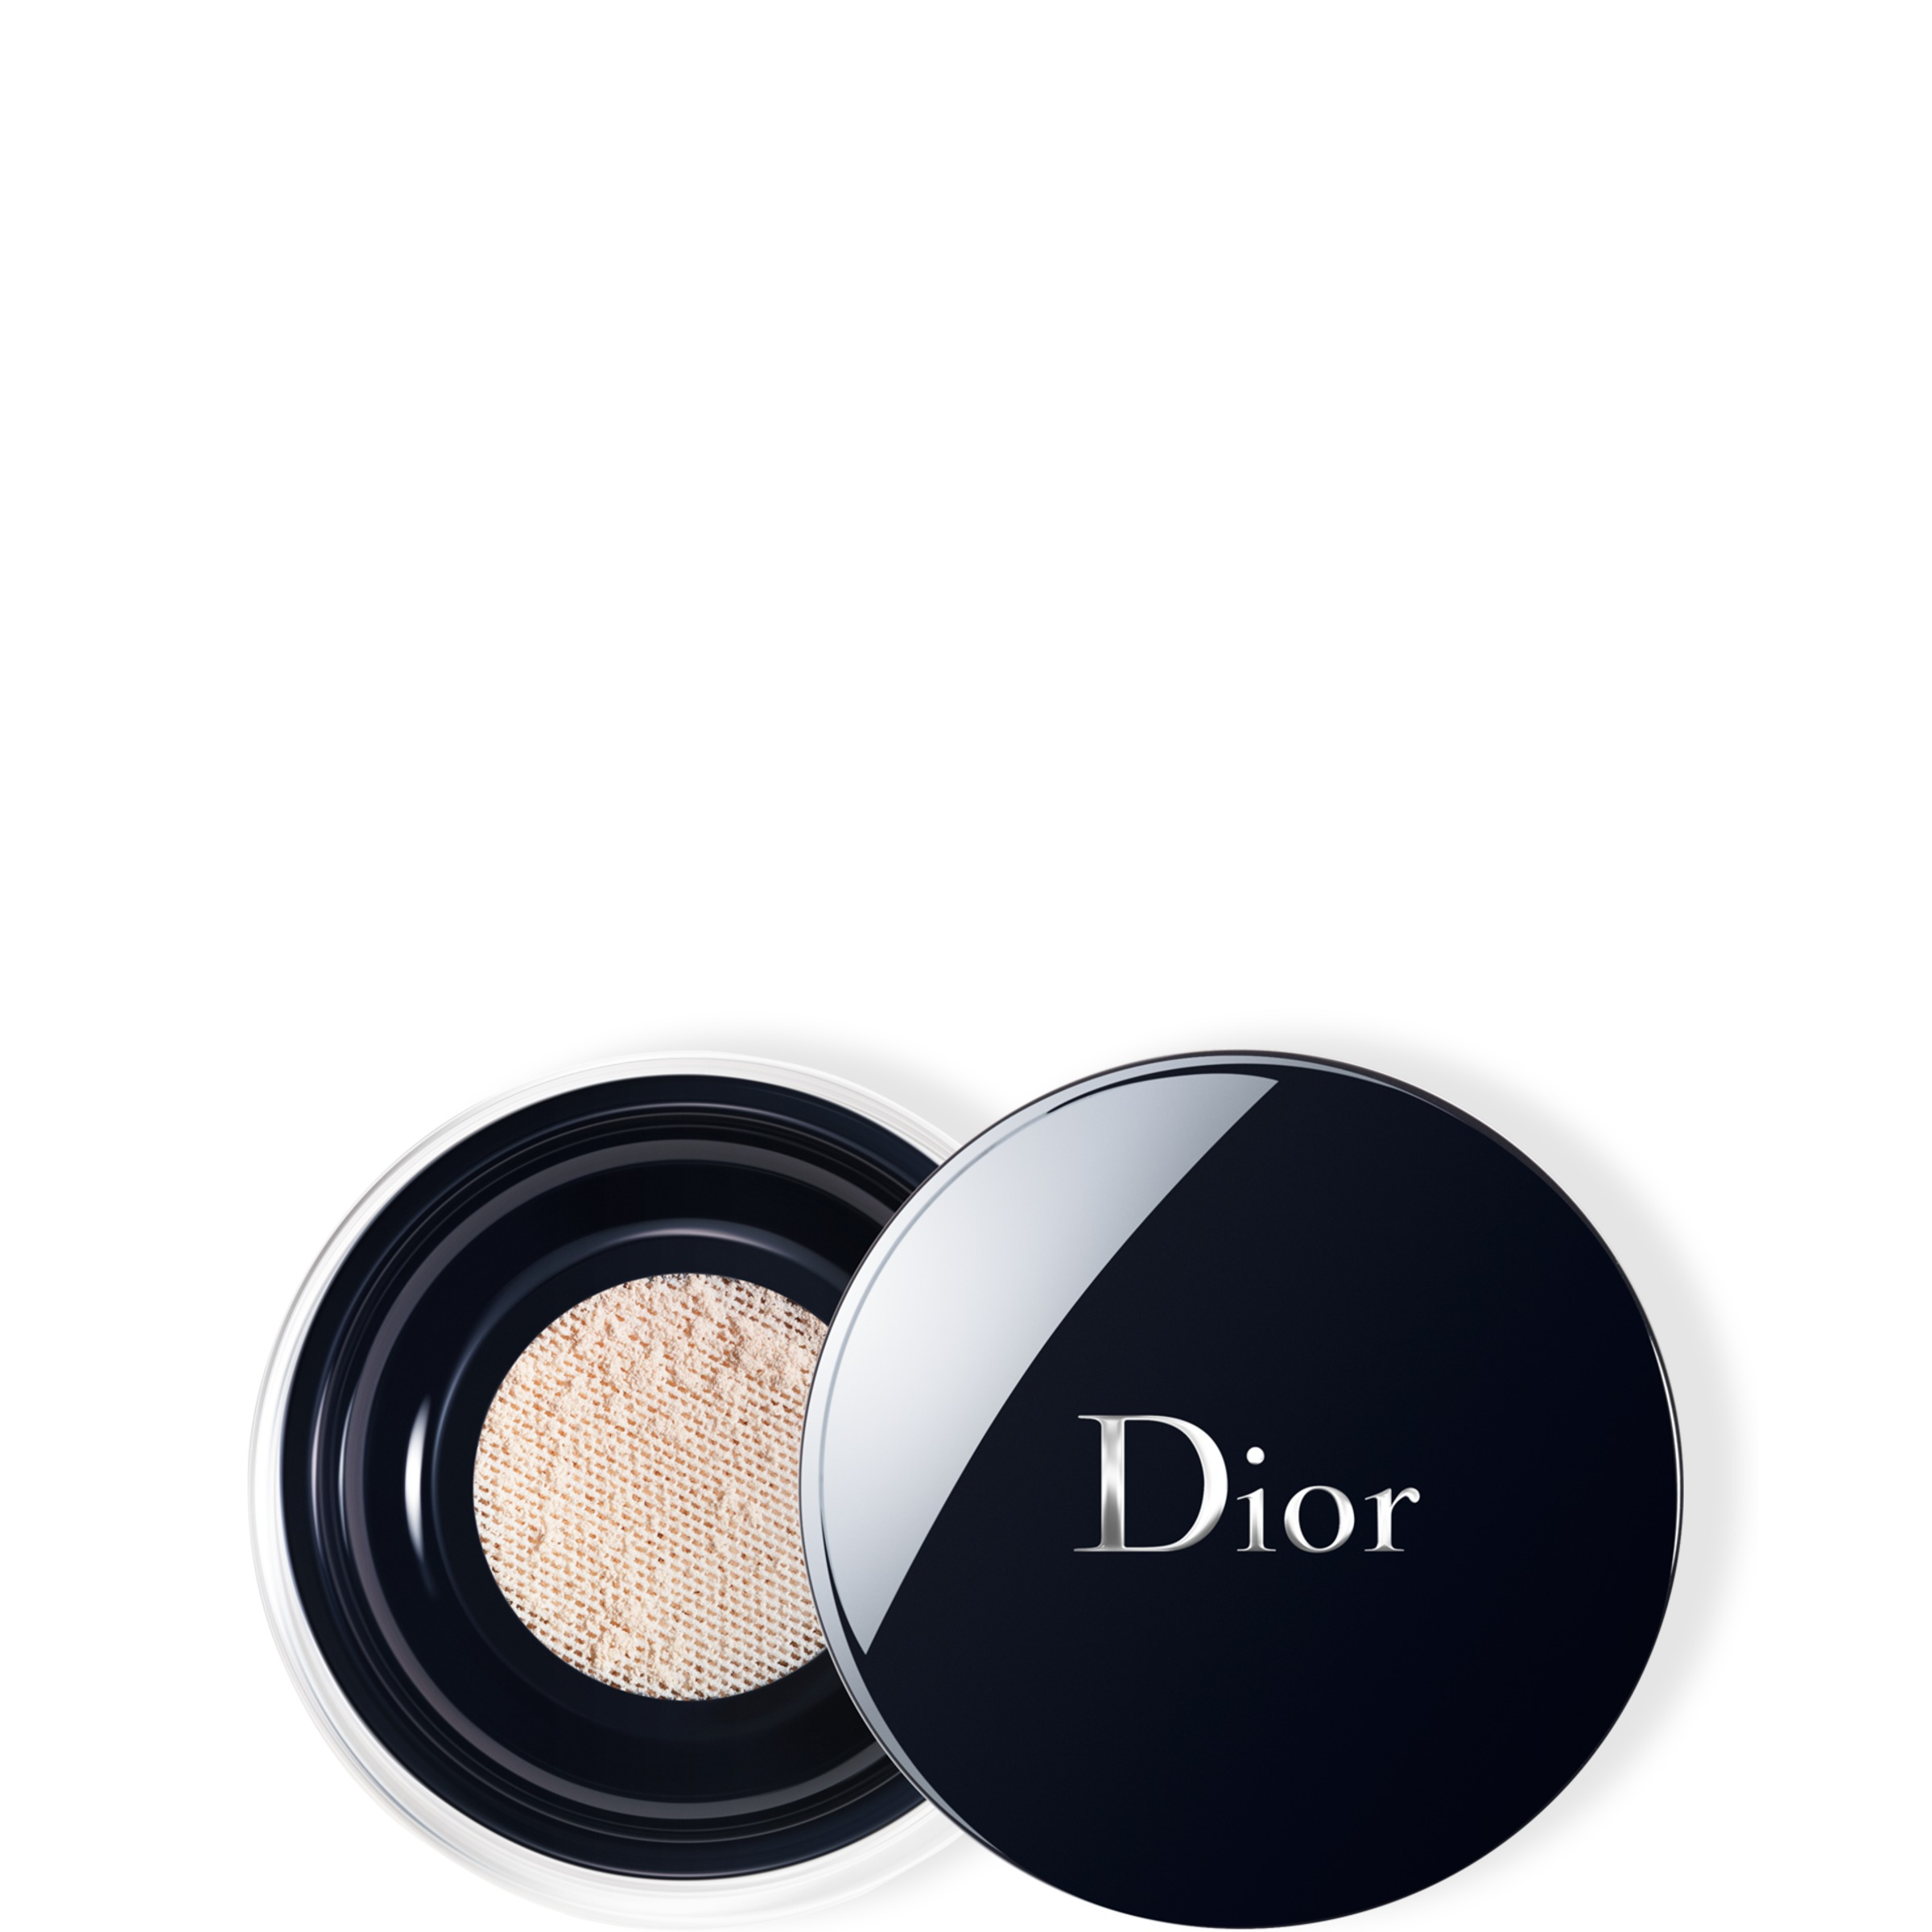 Diorskin Forever & Ever Control Loose Powder